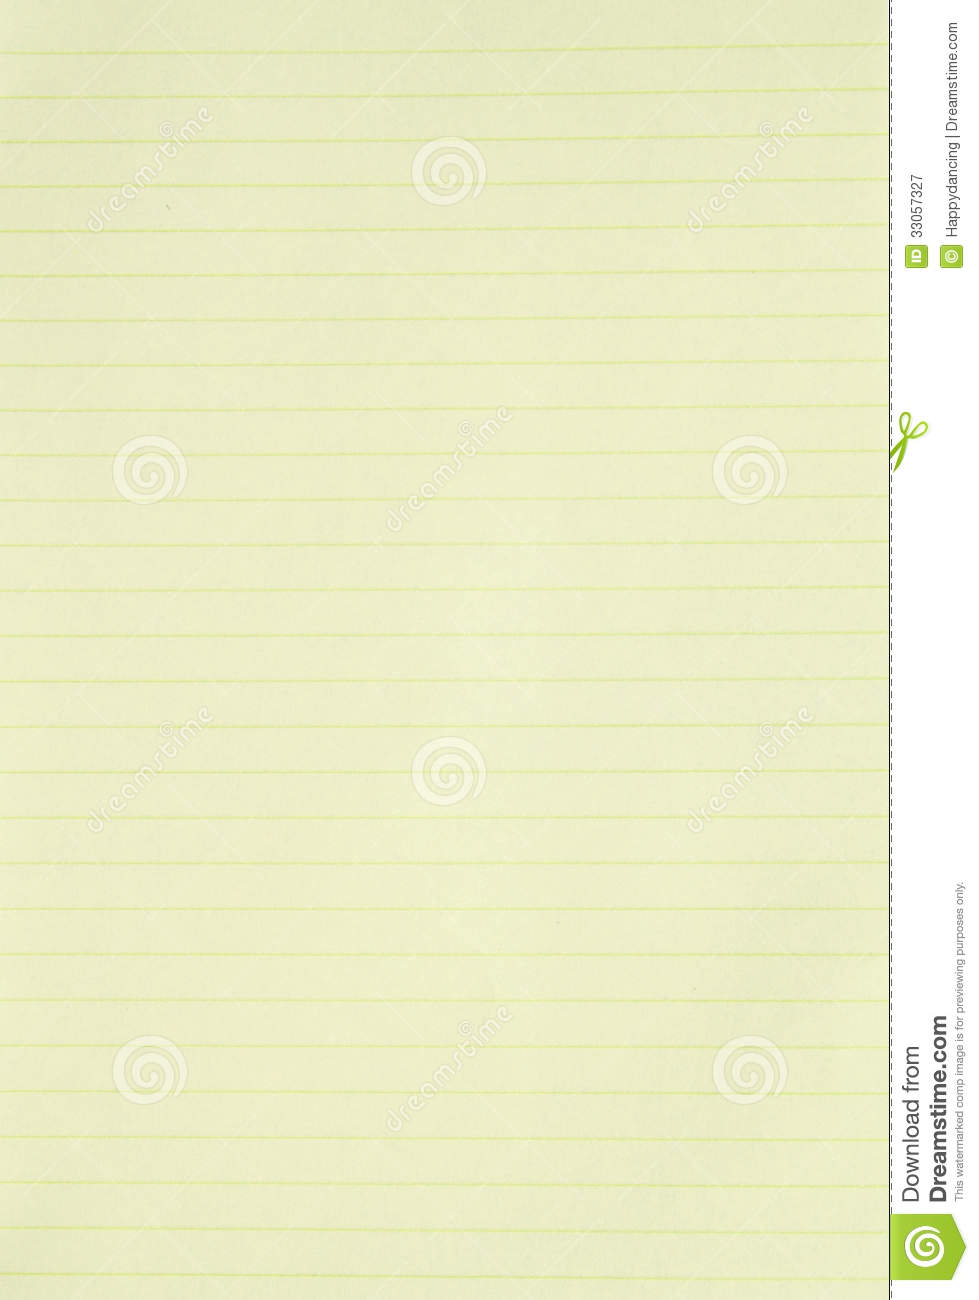 Blank Yellow Lined Paper Background Stock Image Image Of Paper